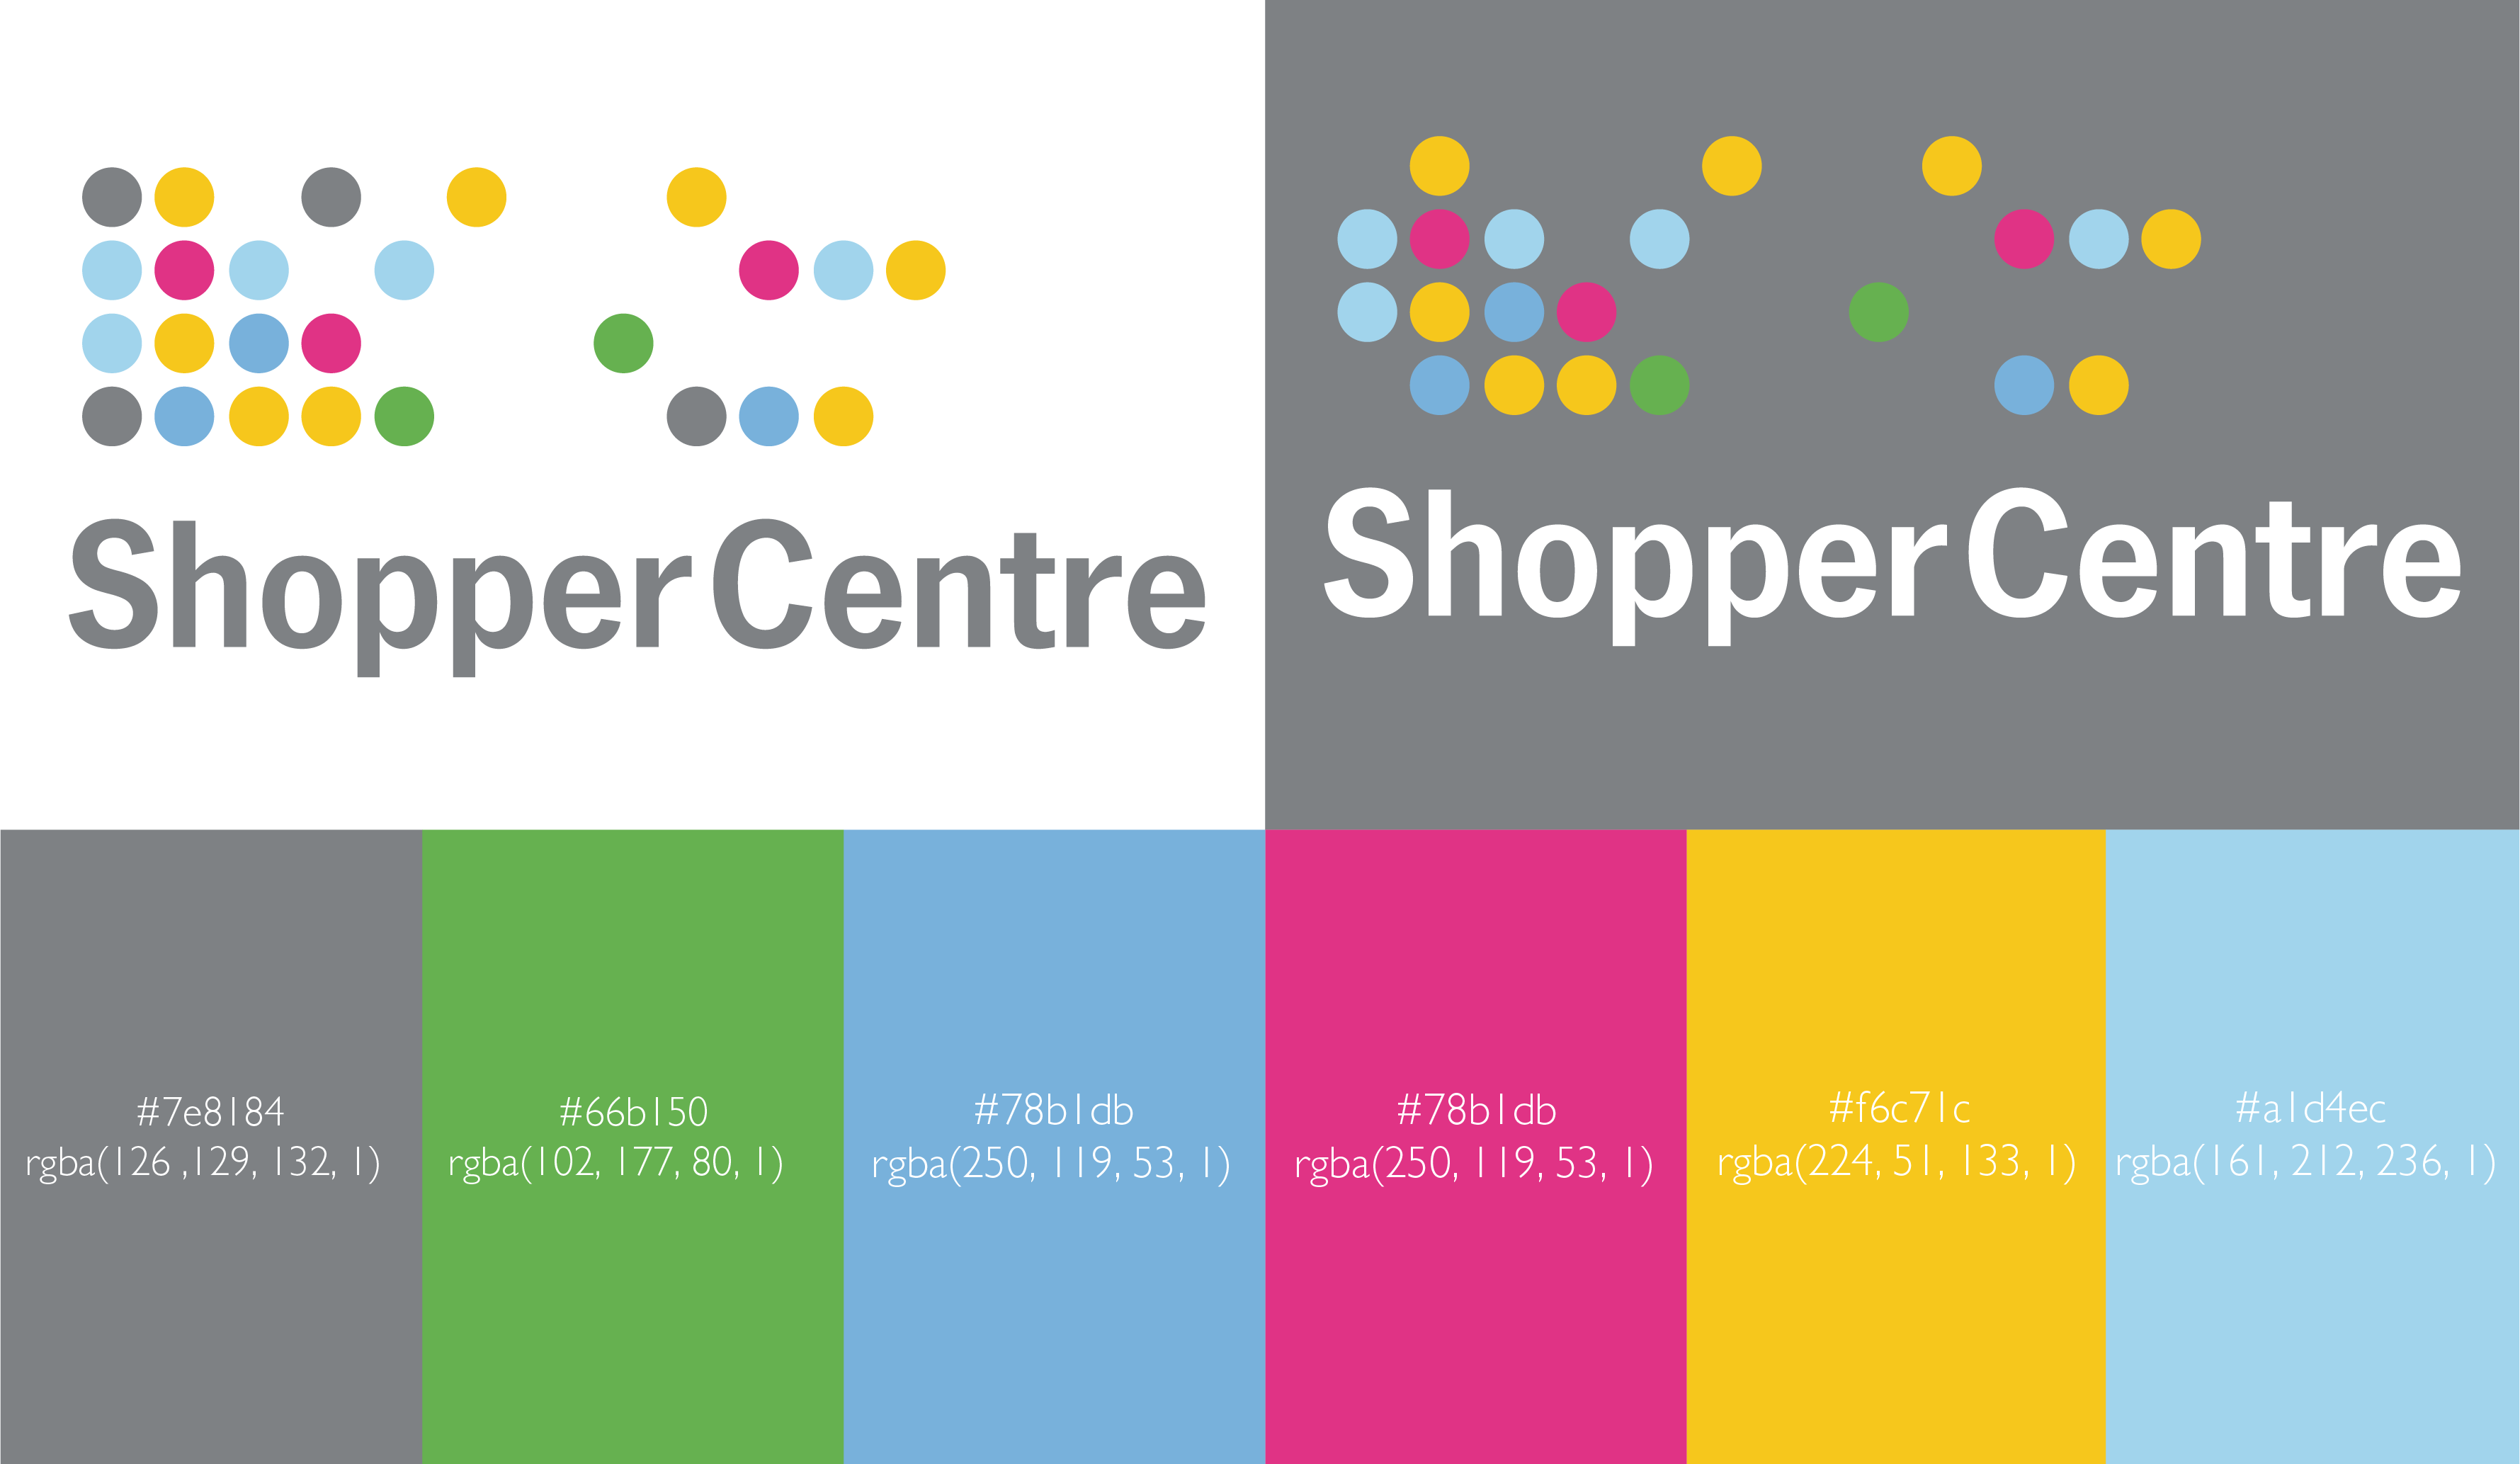 shopper centre brand identity